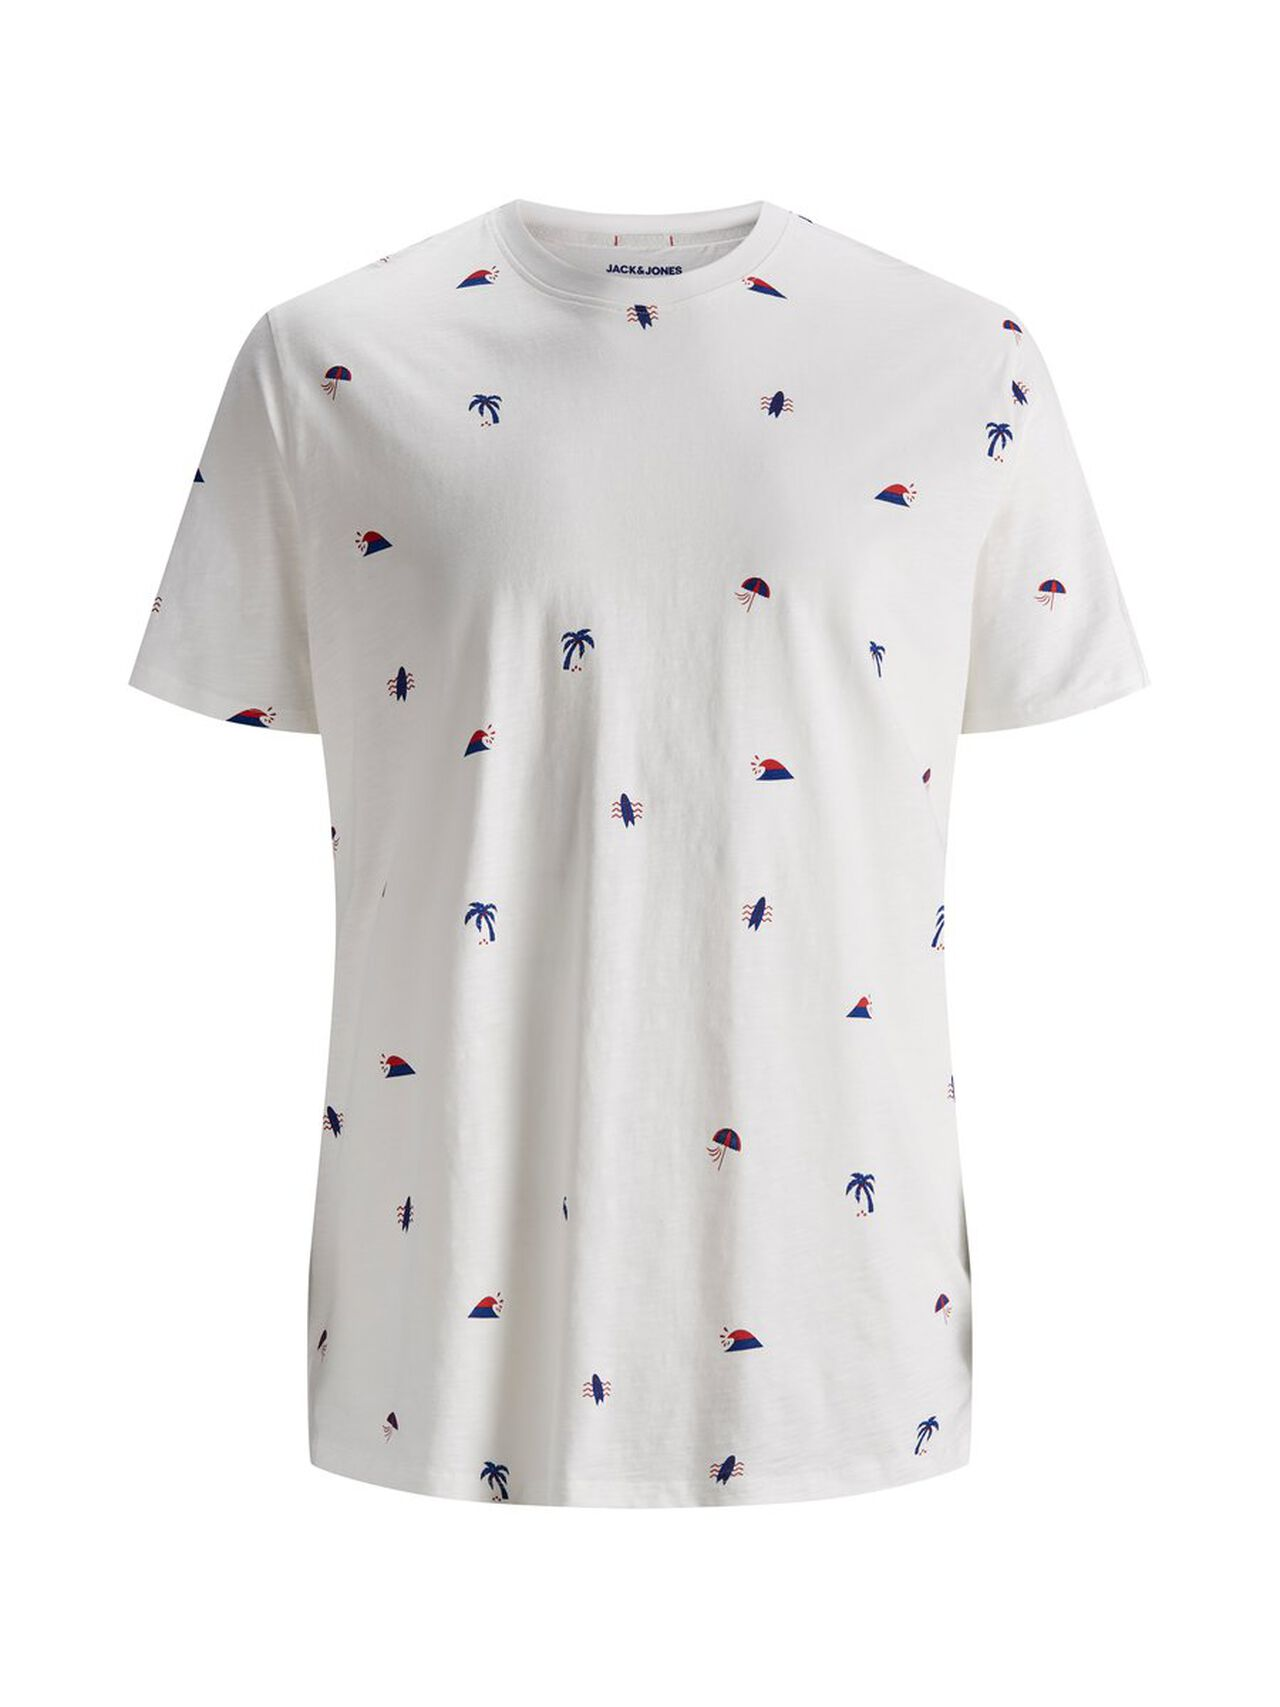 All-over Printed Plus Size T-shirt